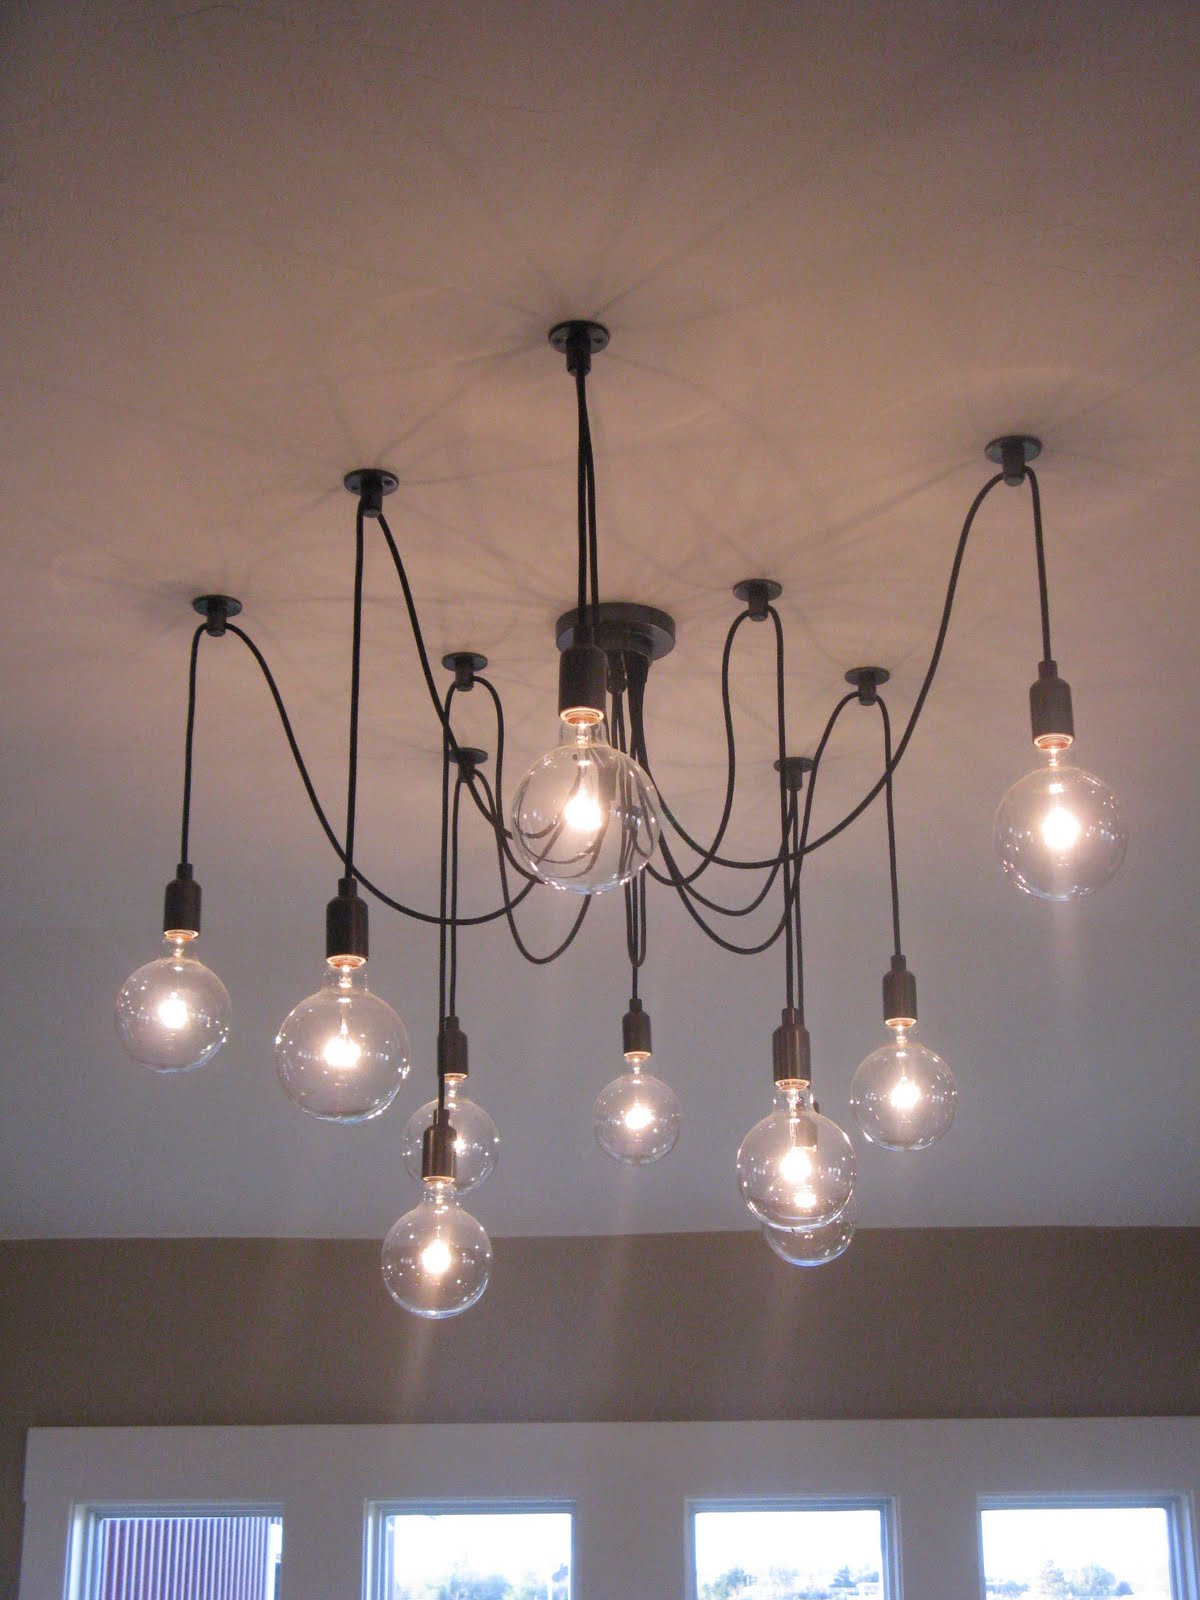 Favorite Farmhouse Feature - Edison Chandelier